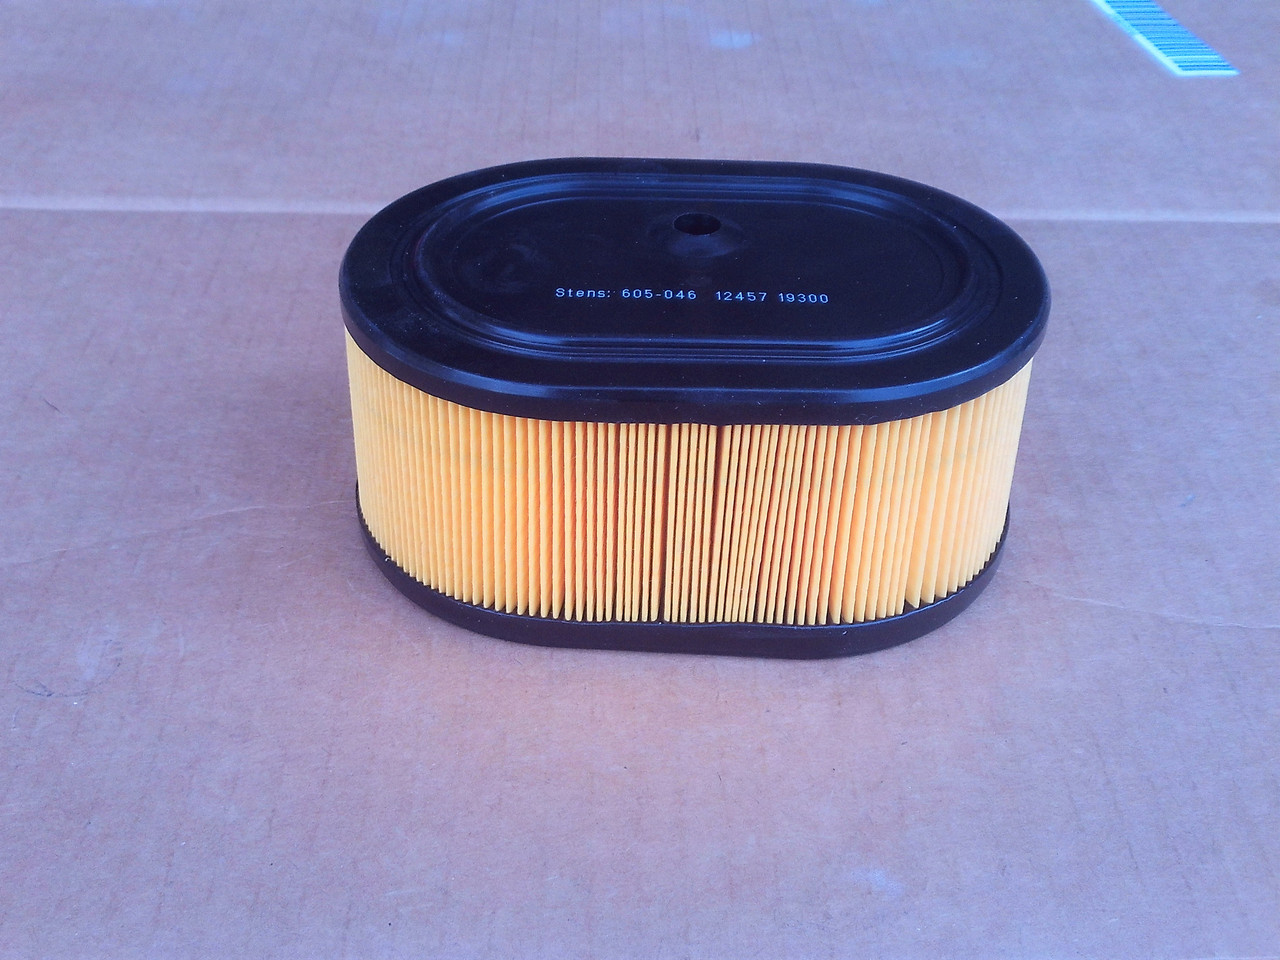 Air Filter for Husqvarna K950, 506231801, 506231802, 506231803, 578120701 chainsaw, ring saw, cut off saw